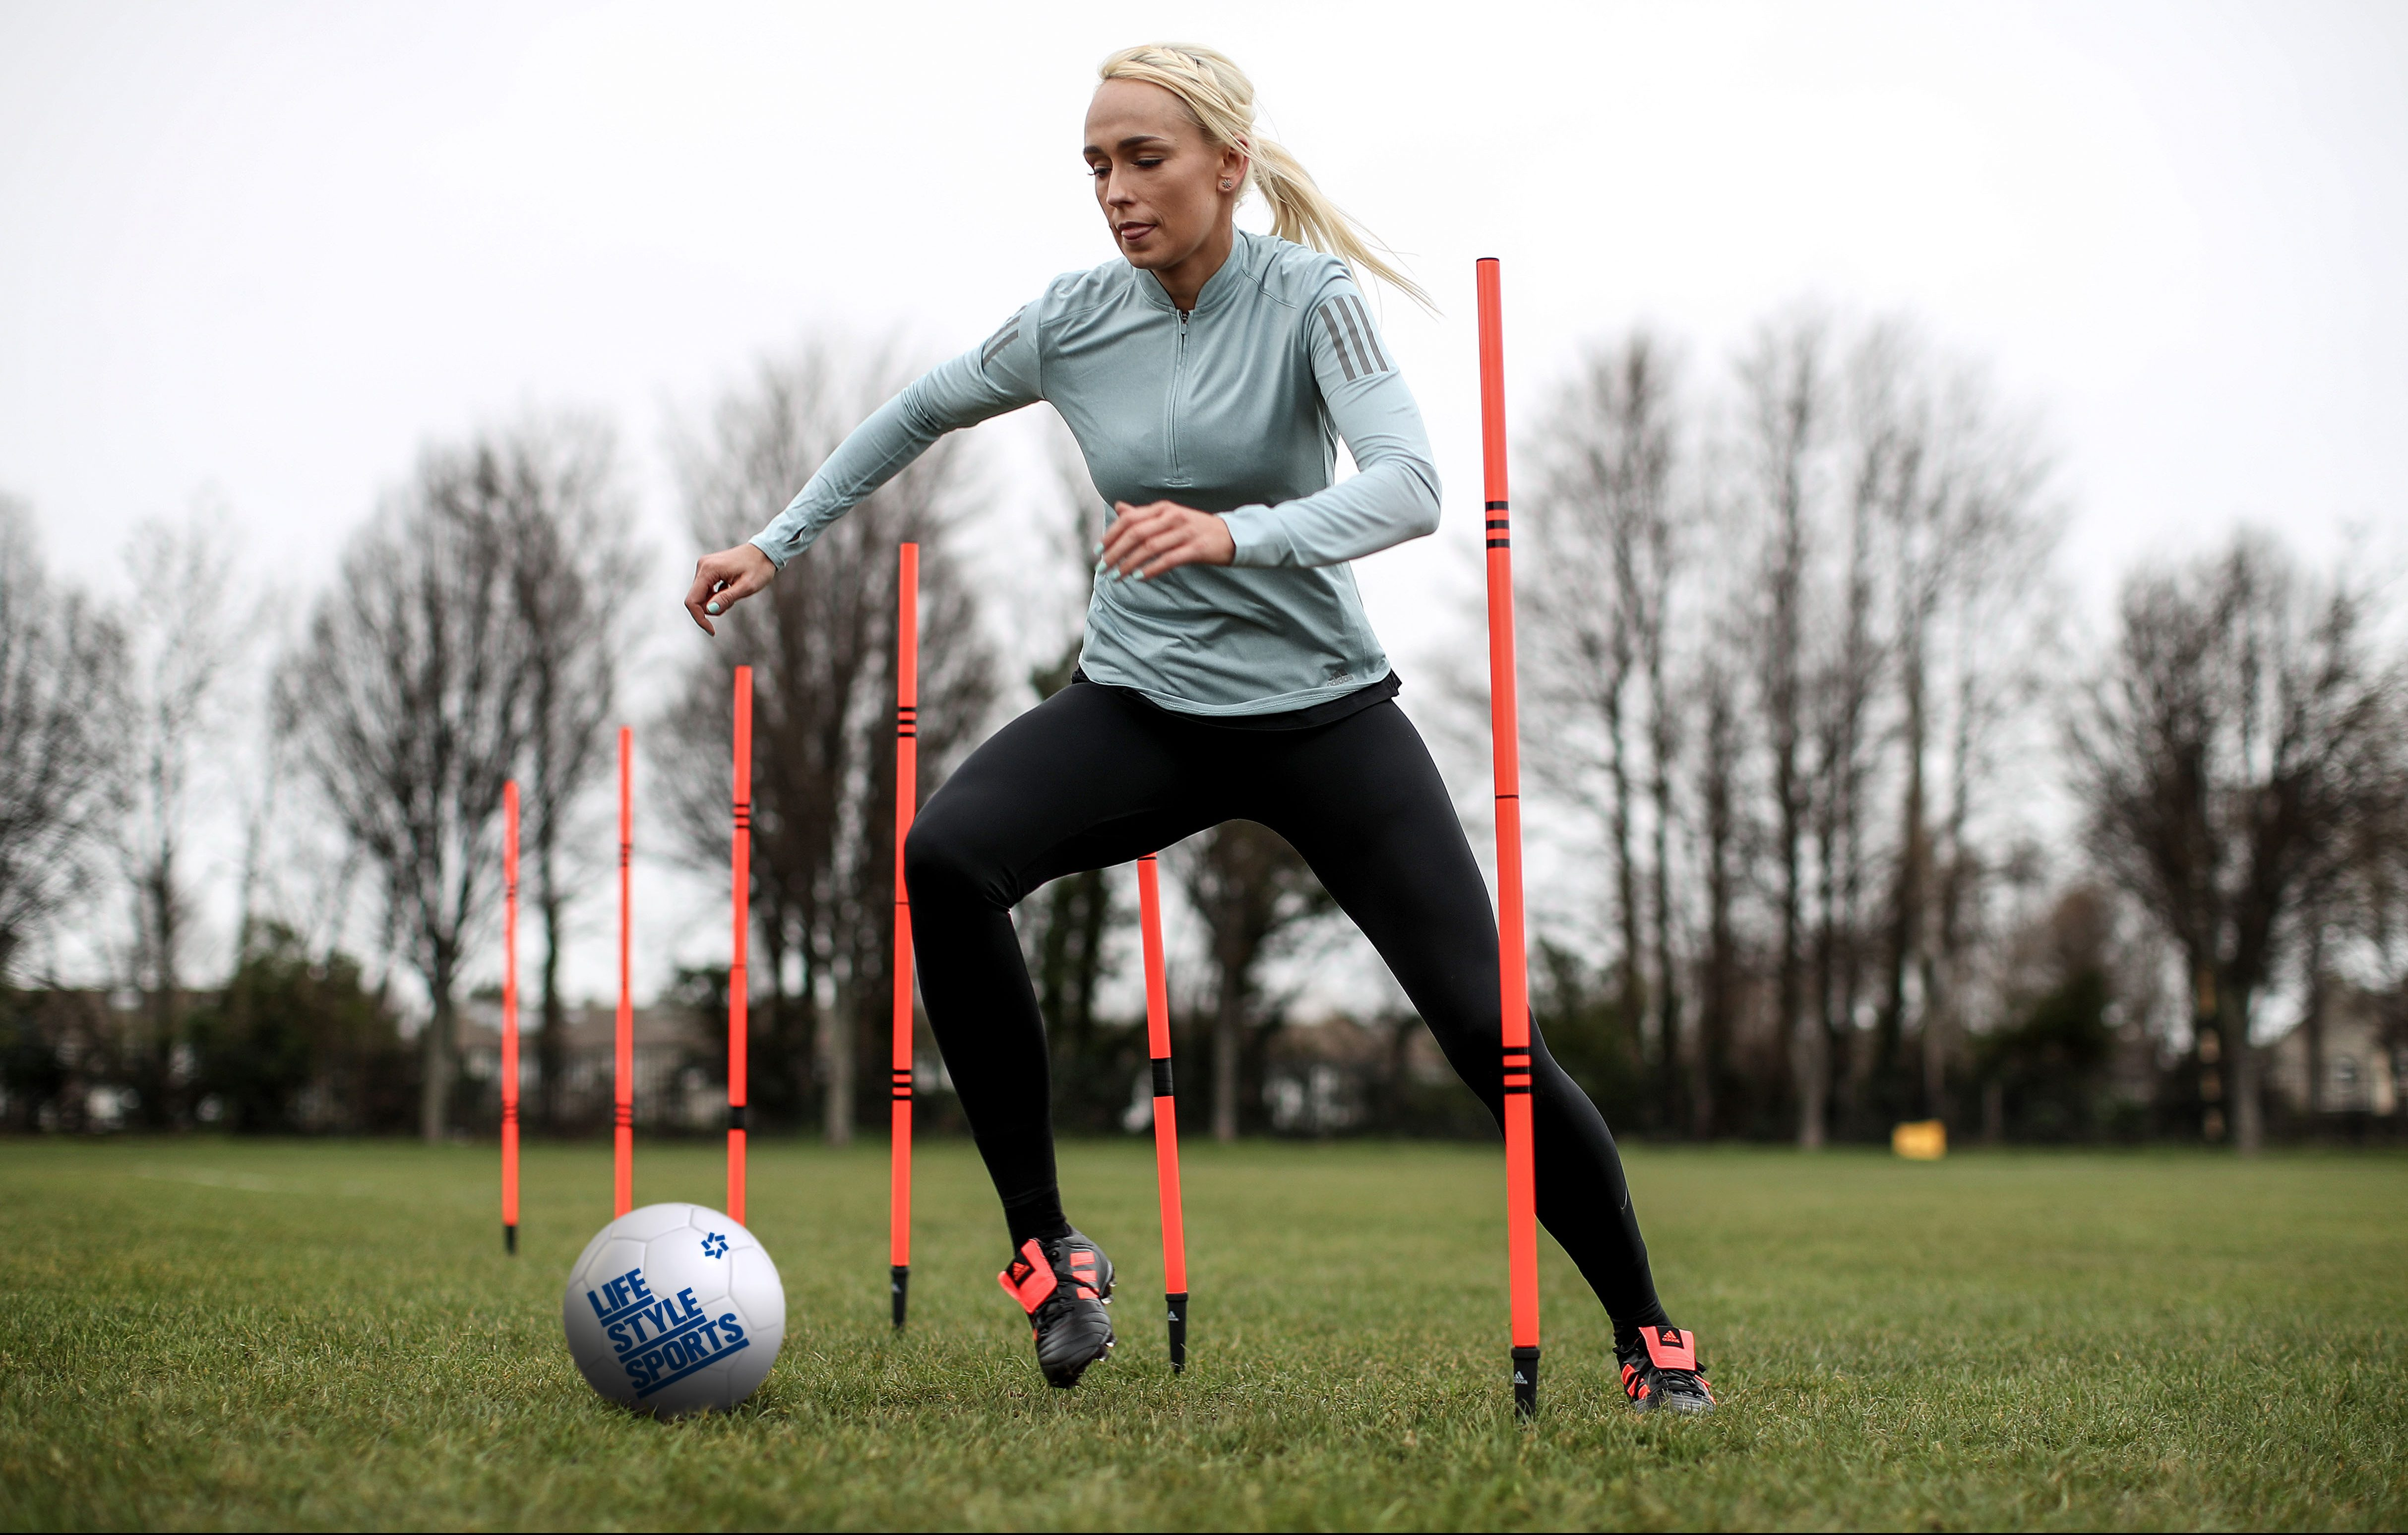 Meet Stephanie Roche #LifeStyleSportsFootball